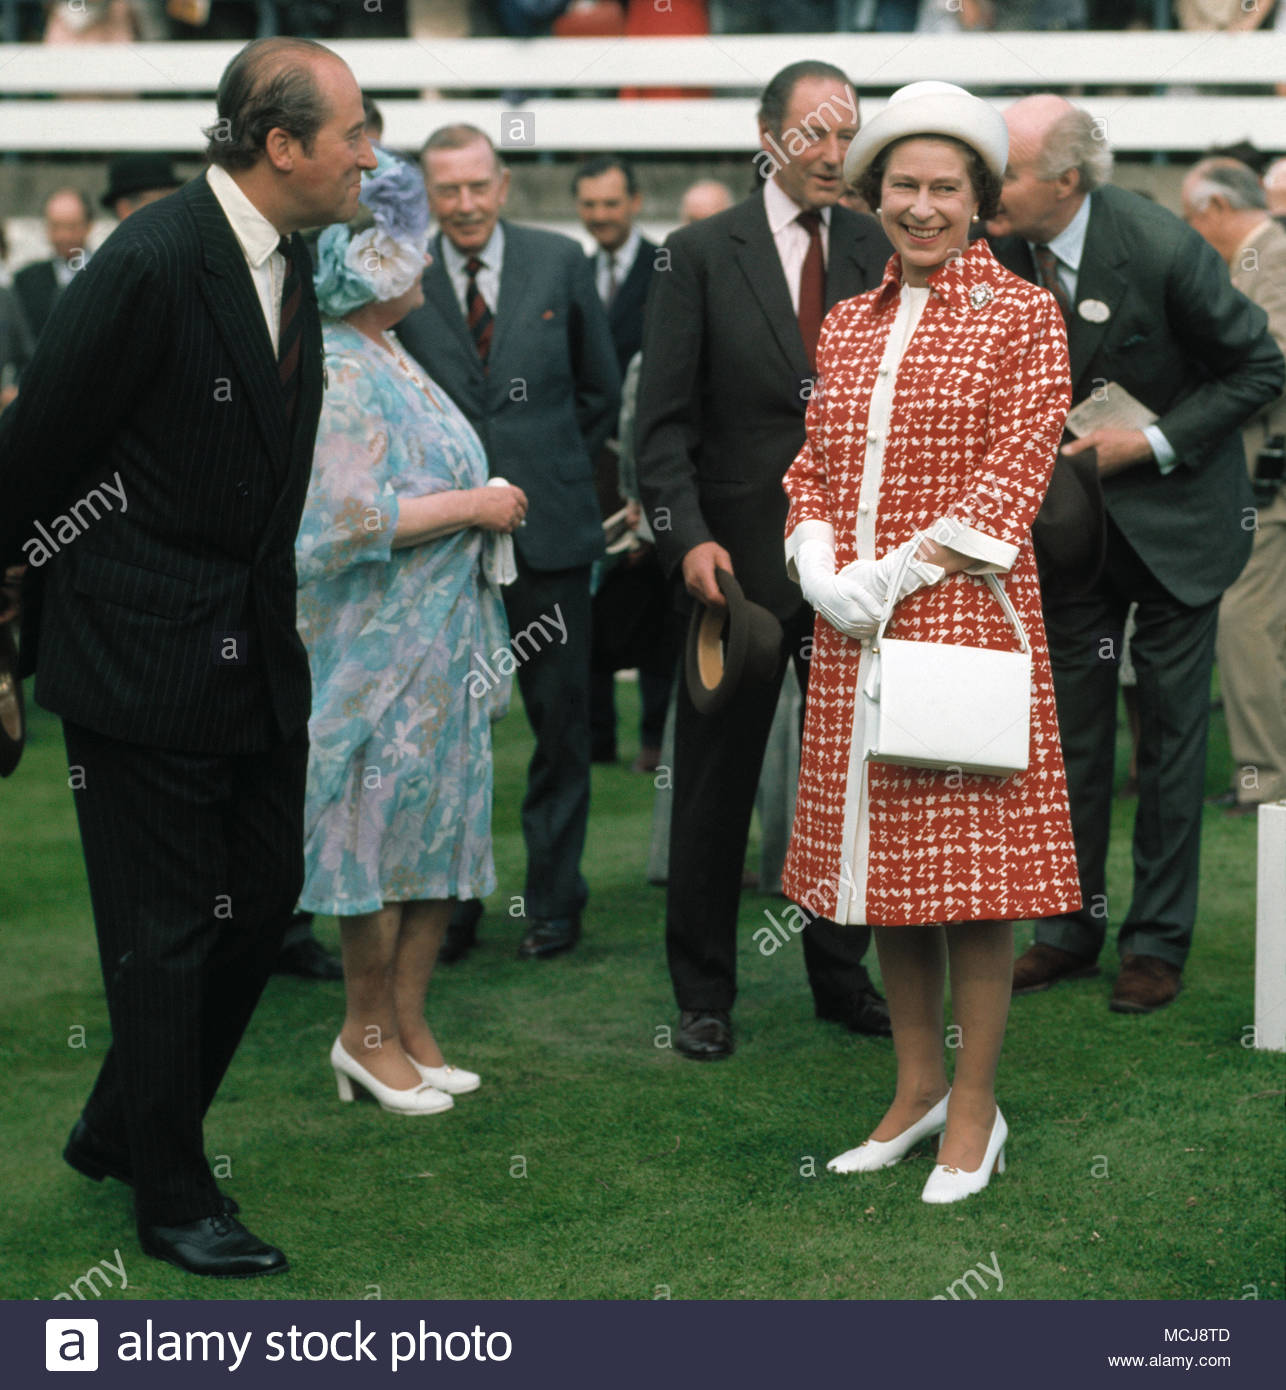 Her Majesty, Queen Elizabeth II at Royal Ascot racecourse. 1977-07-23. - Stock Image